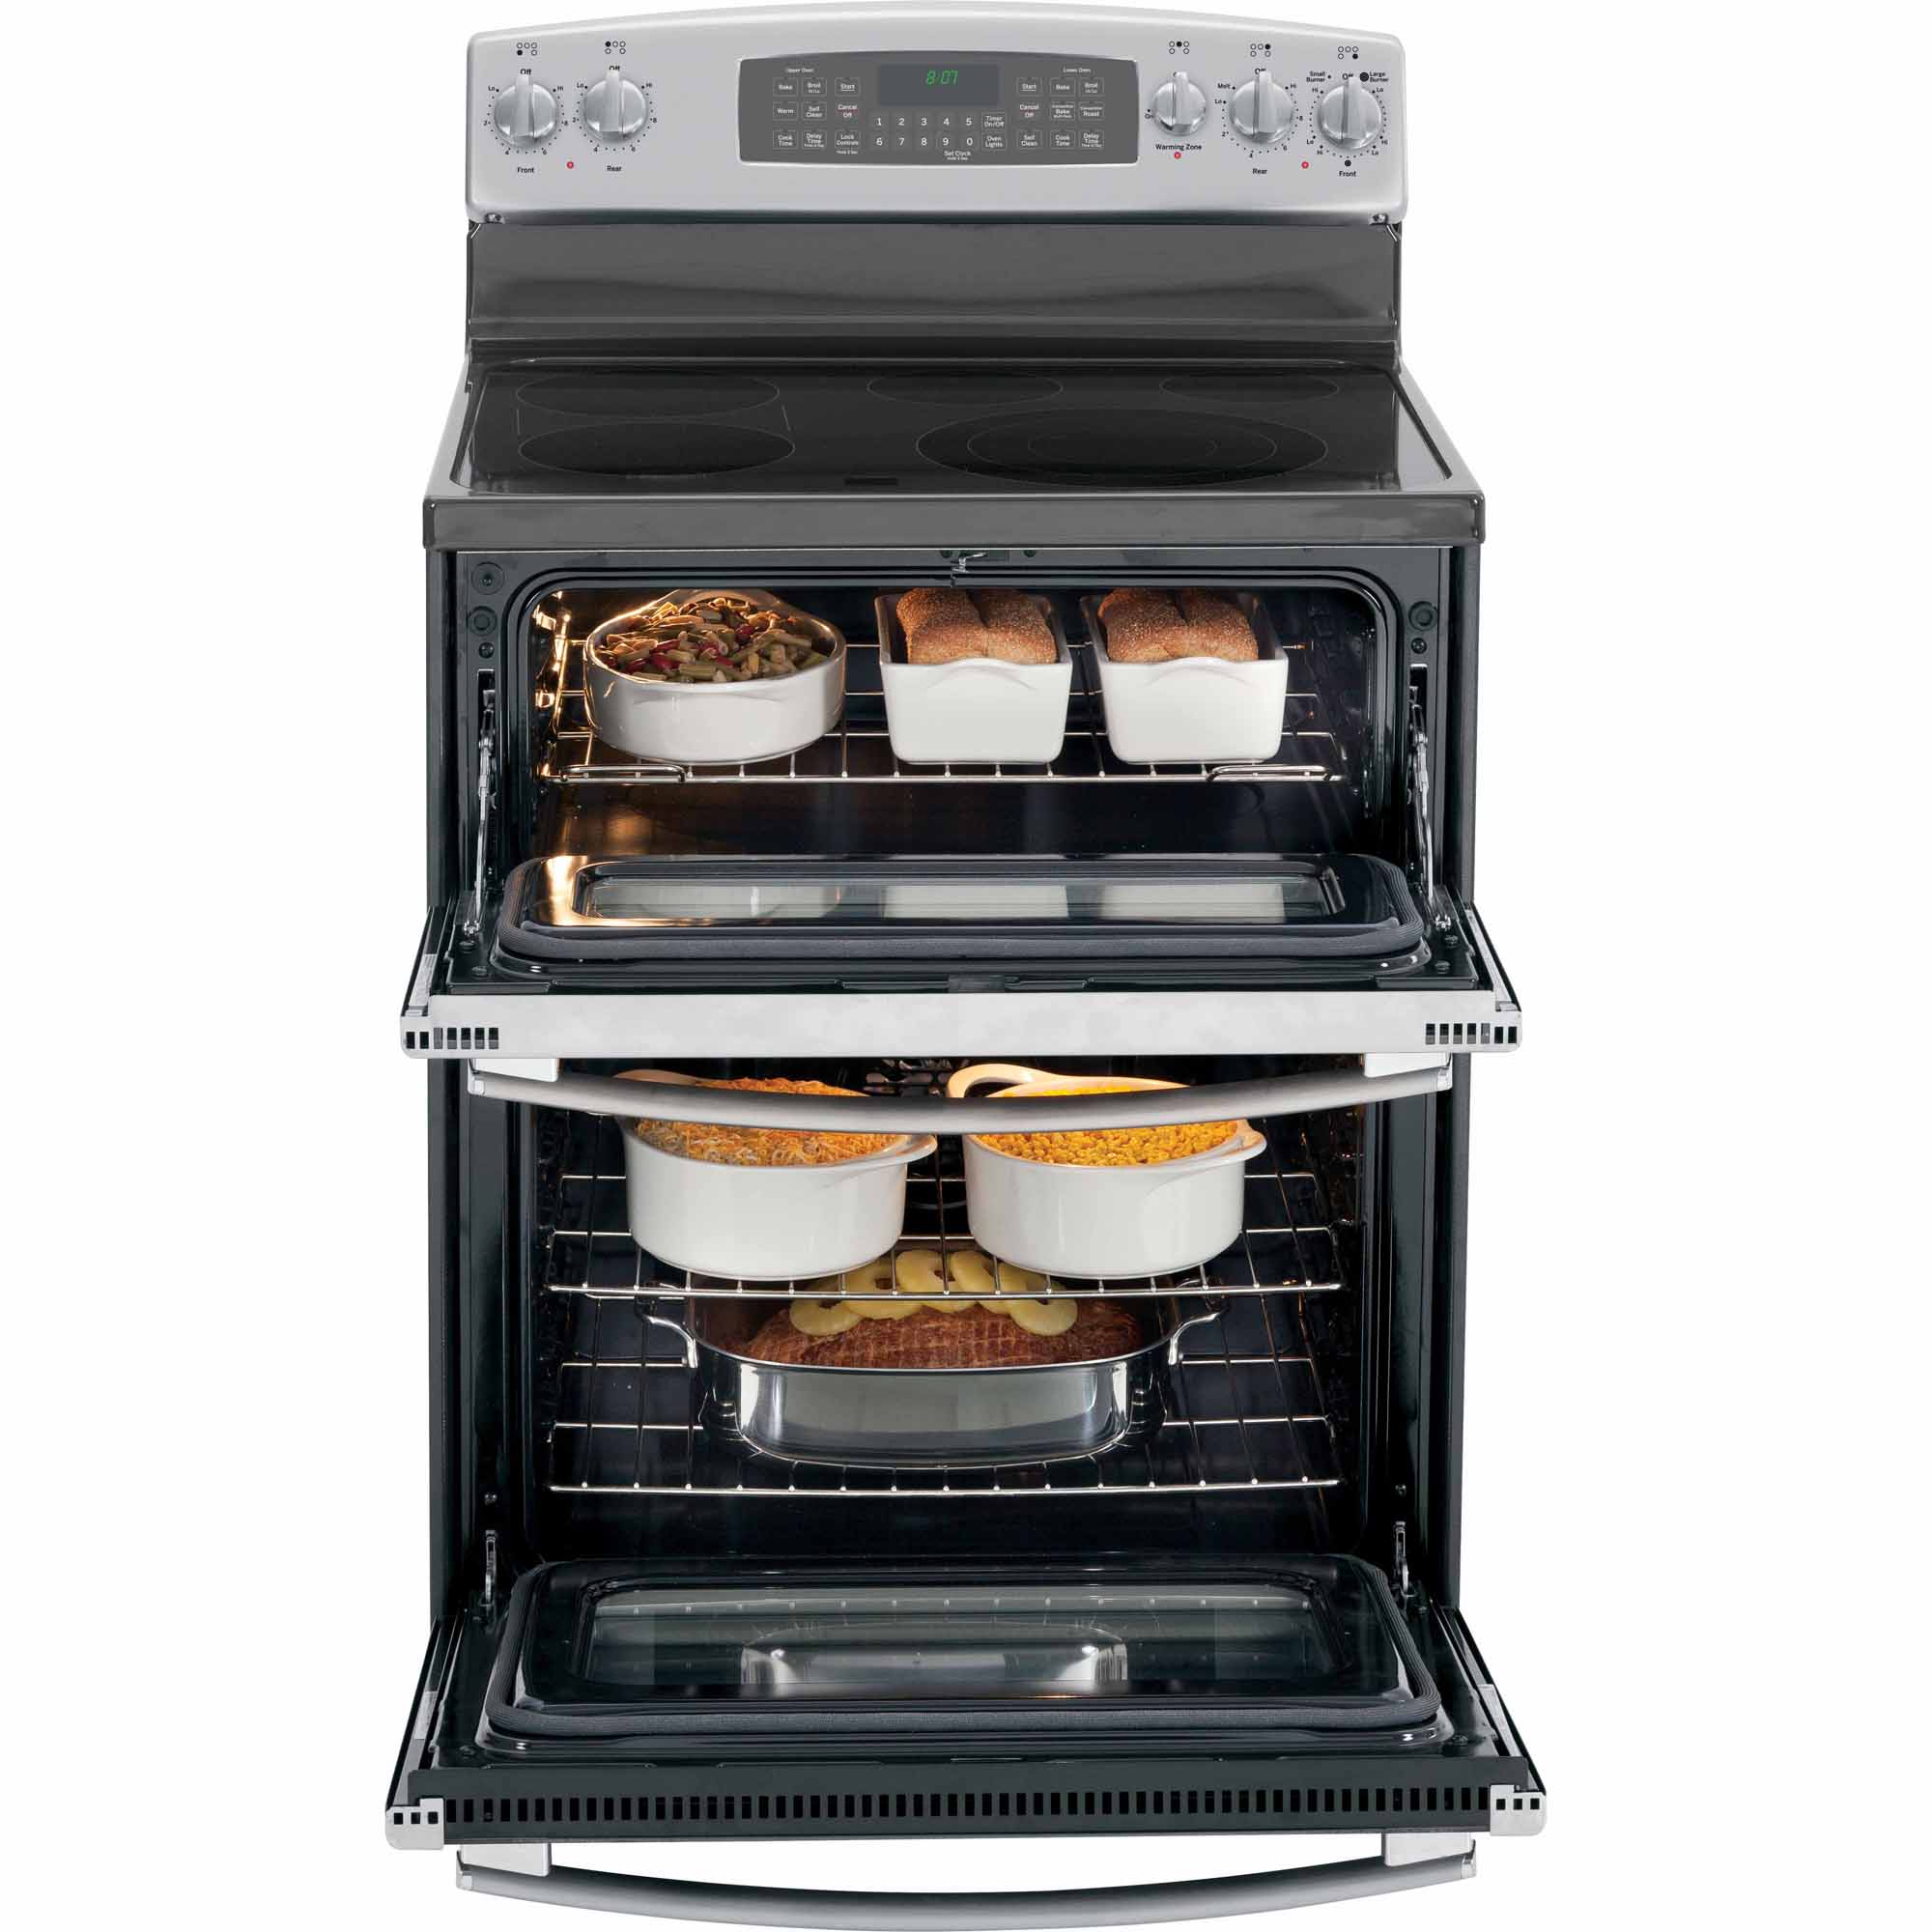 GE Appliances 6.6 cu. ft. Electric Range w/ Convection Oven - Stainless